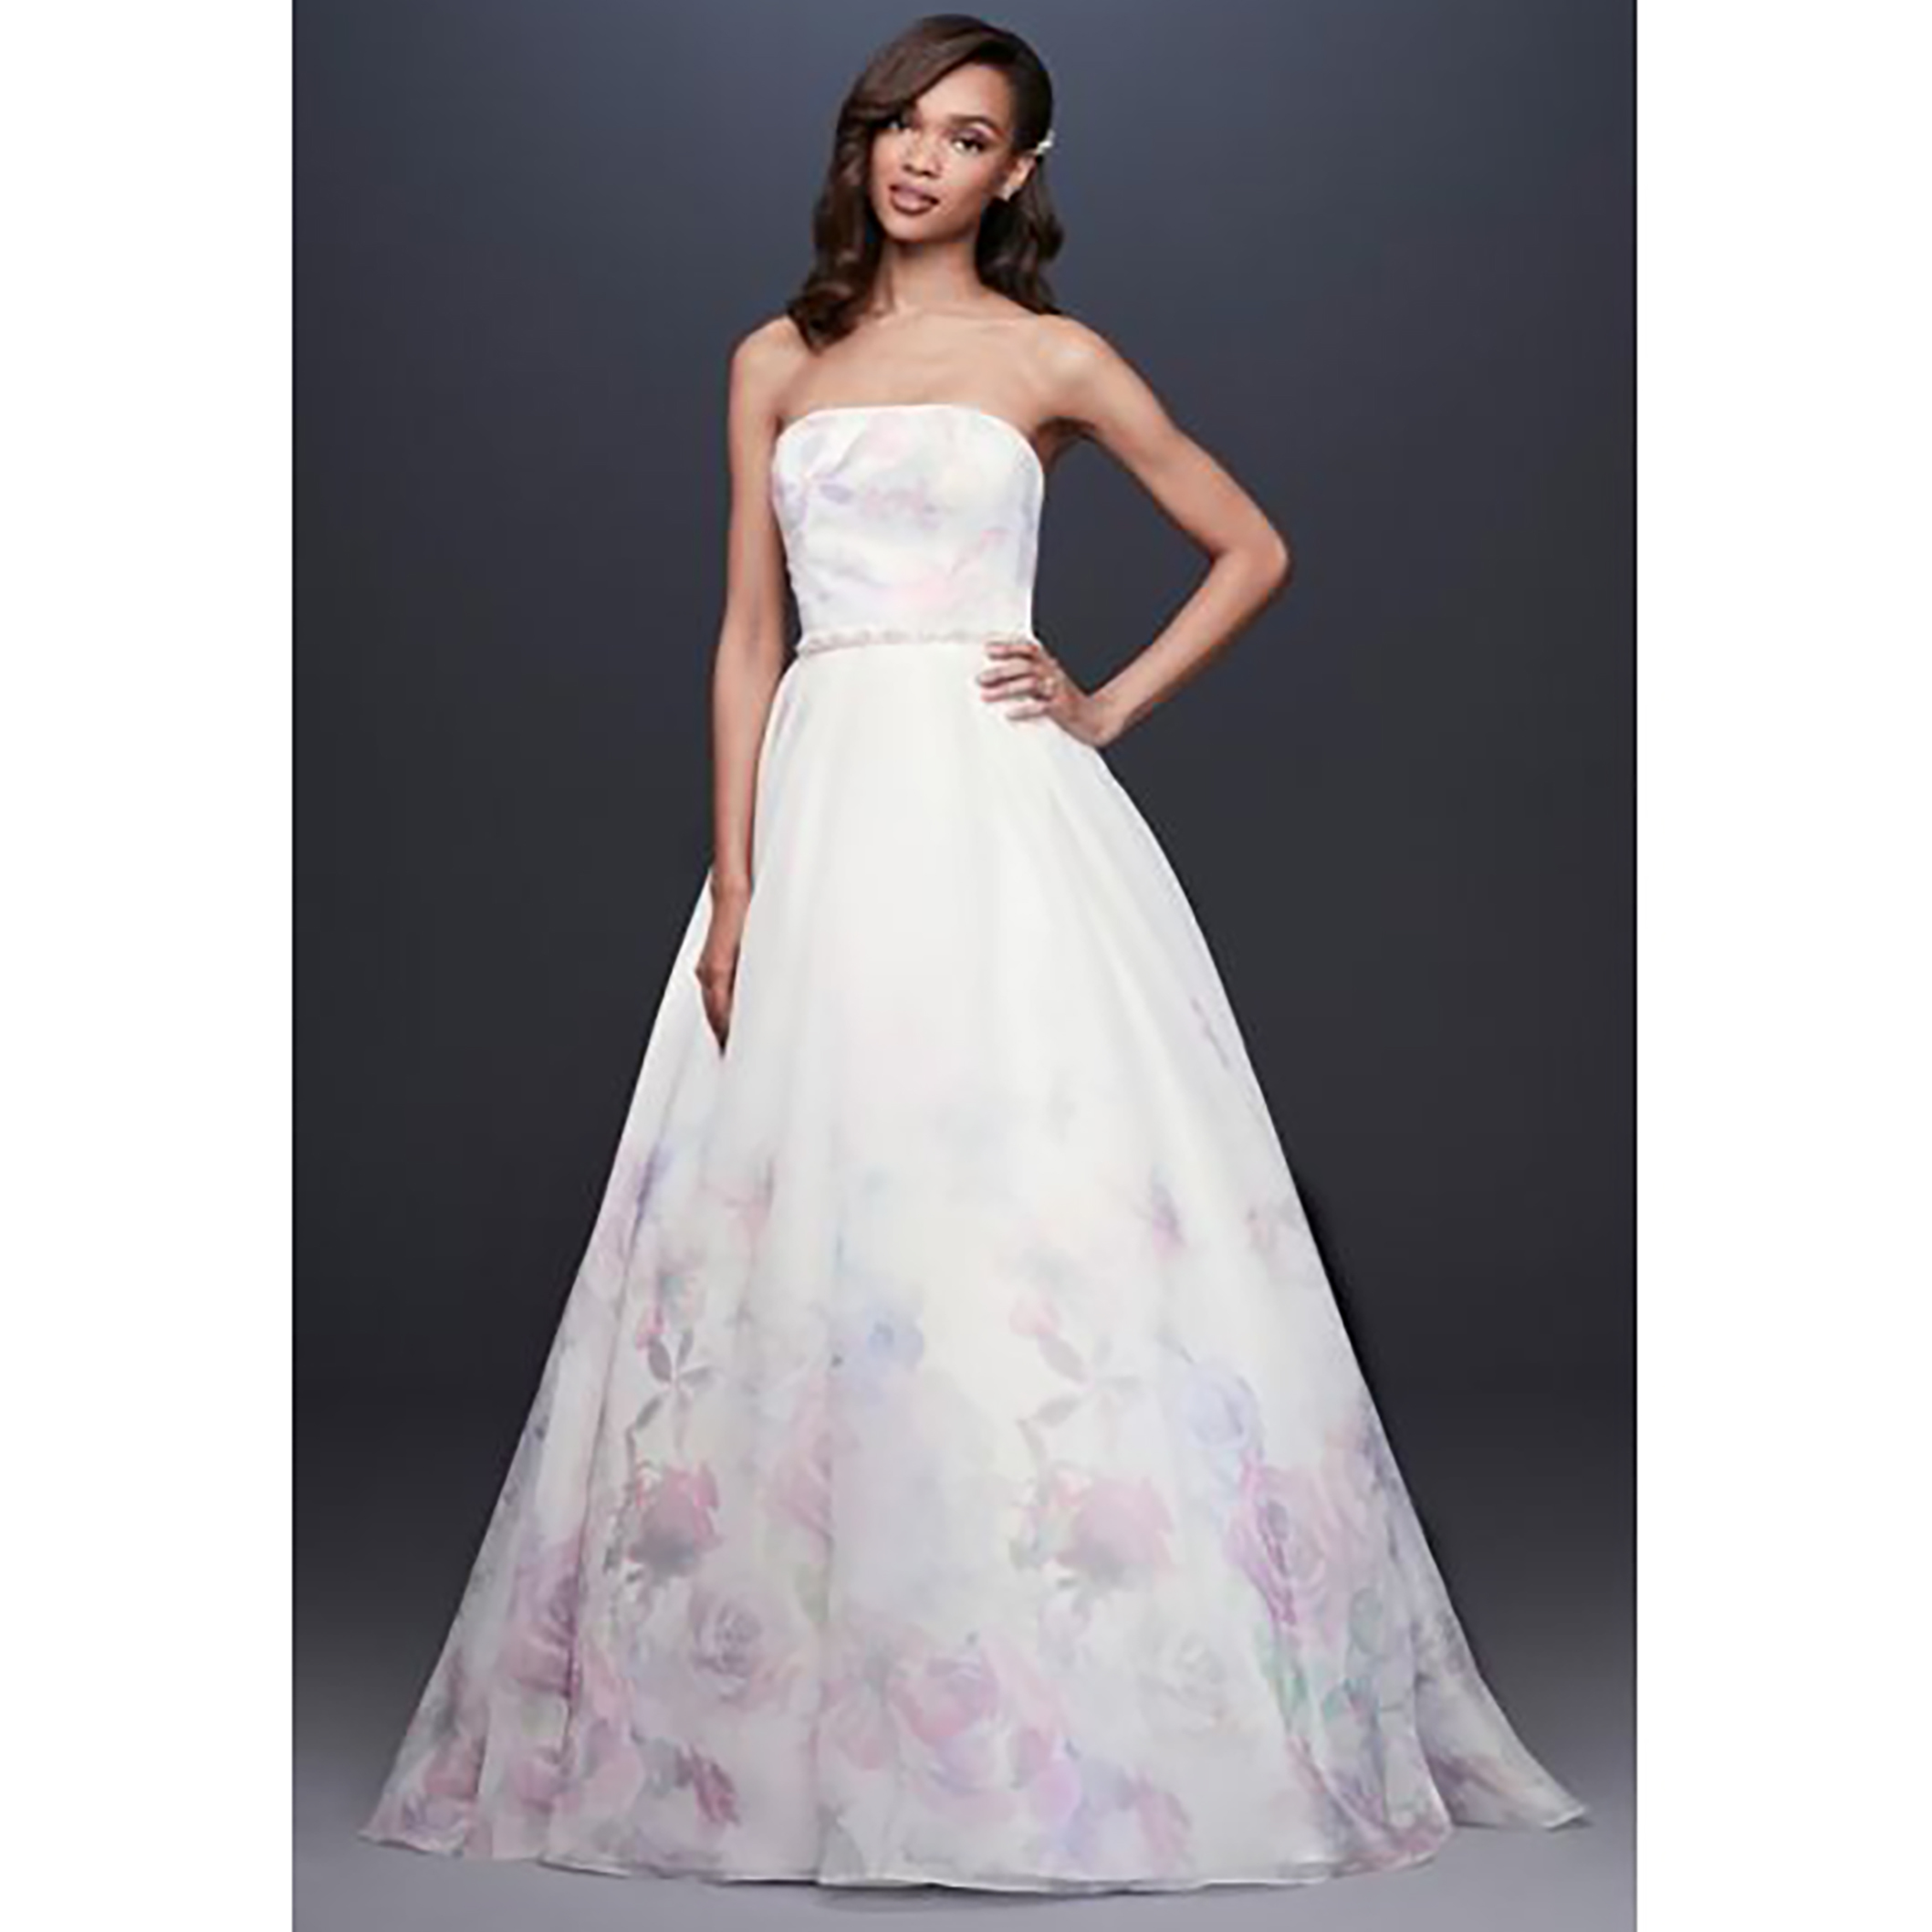 b8cf27074e20d2 colorful wedding gowns Floral Watercolor Organza Ball Gown Wedding Dress  davids bridal photo